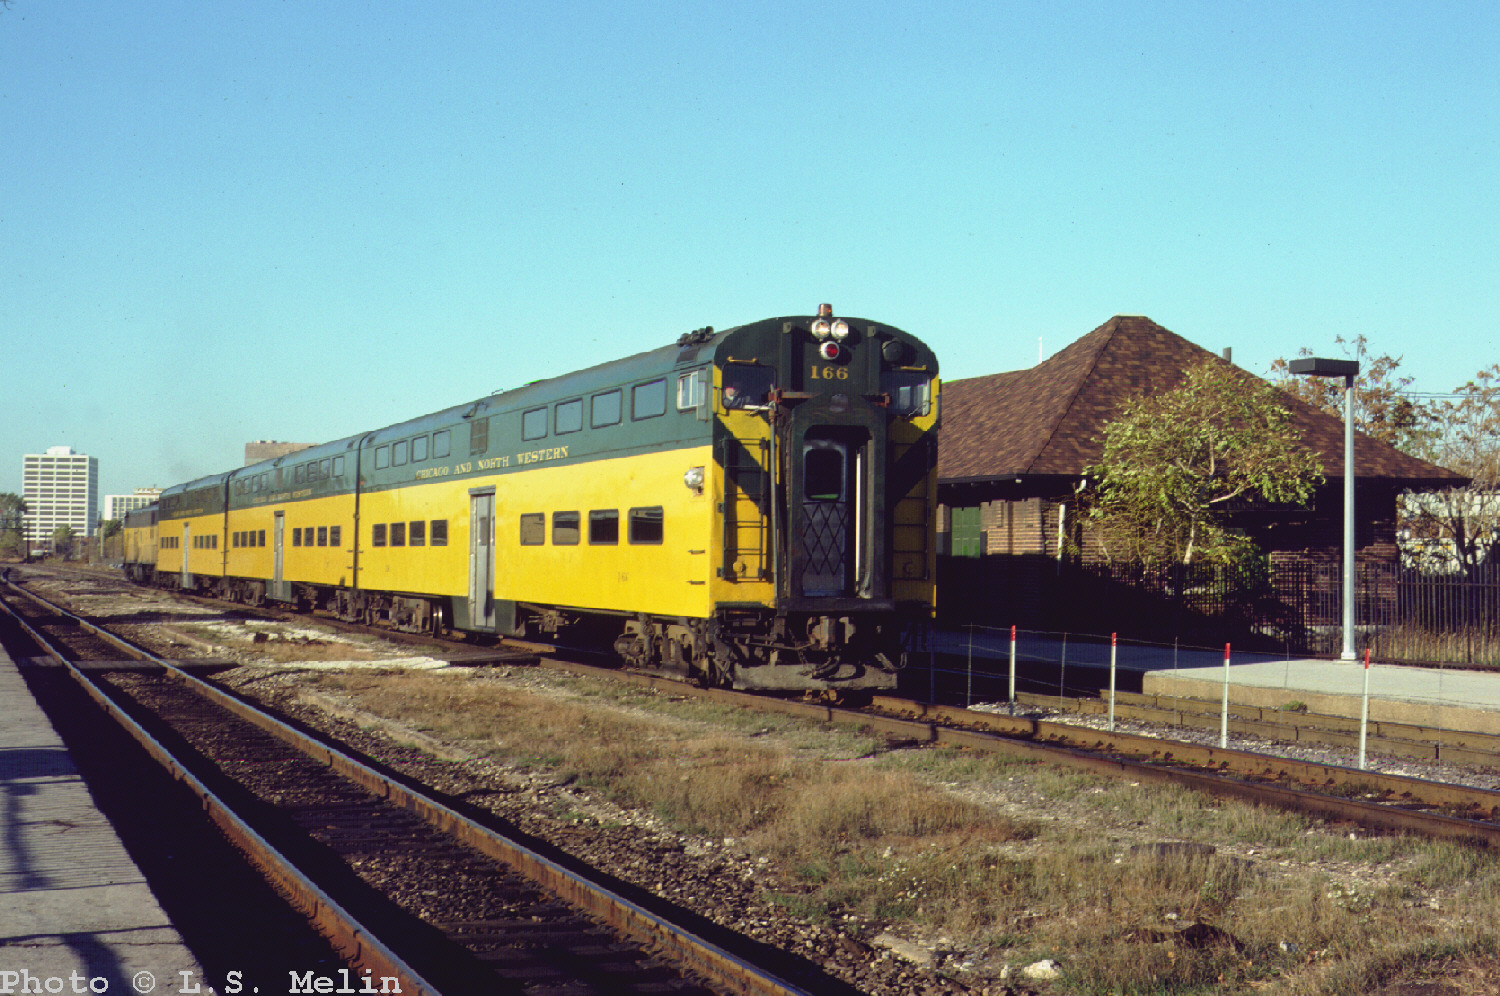 Passenger trains of the chicago and north western railway